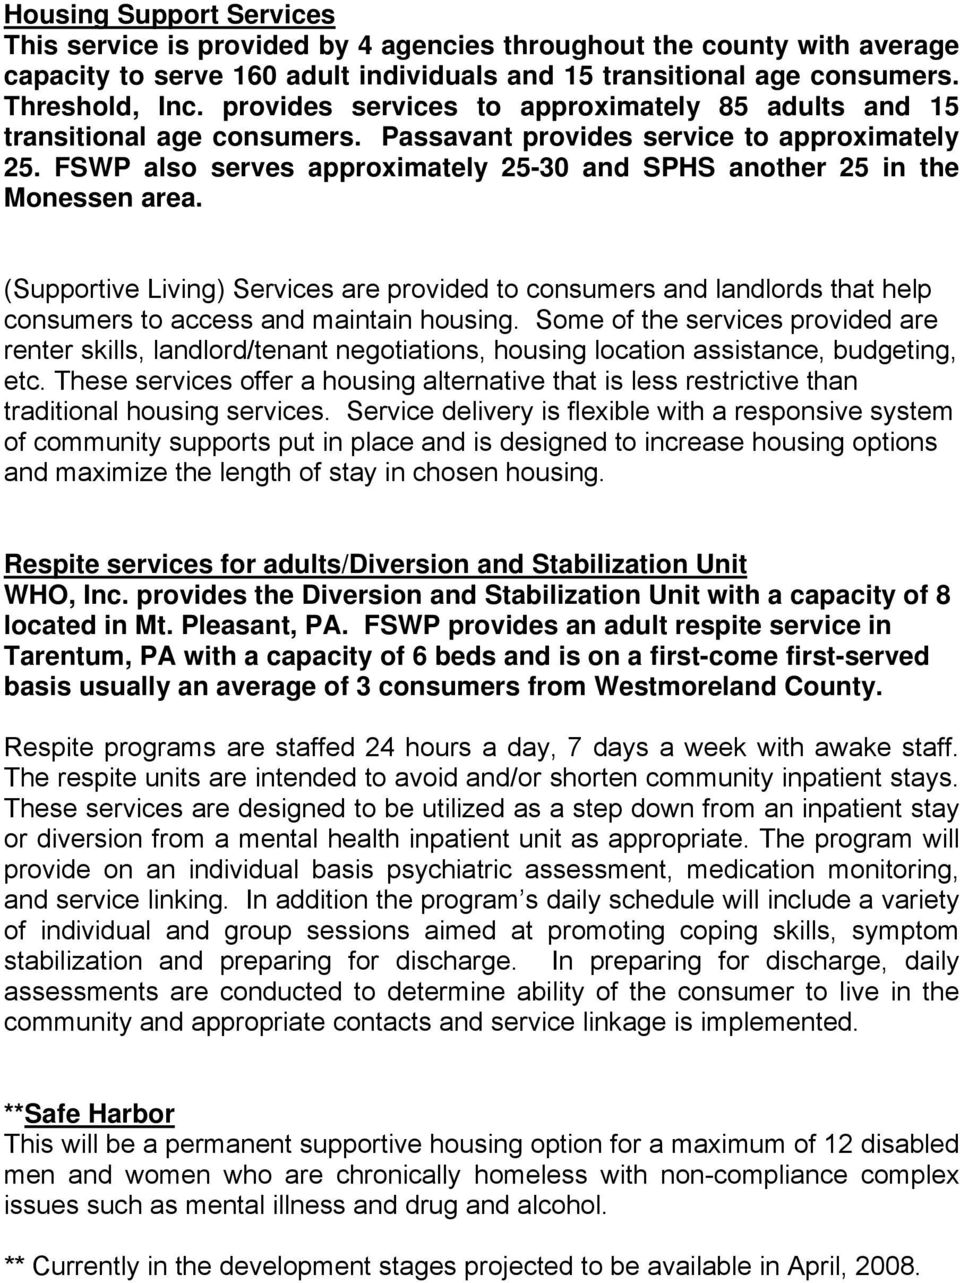 FSWP also serves approximately 25-30 and SPHS another 25 in the Monessen area. (Supportive Living) Services are provided to consumers and landlords that help consumers to access and maintain housing.